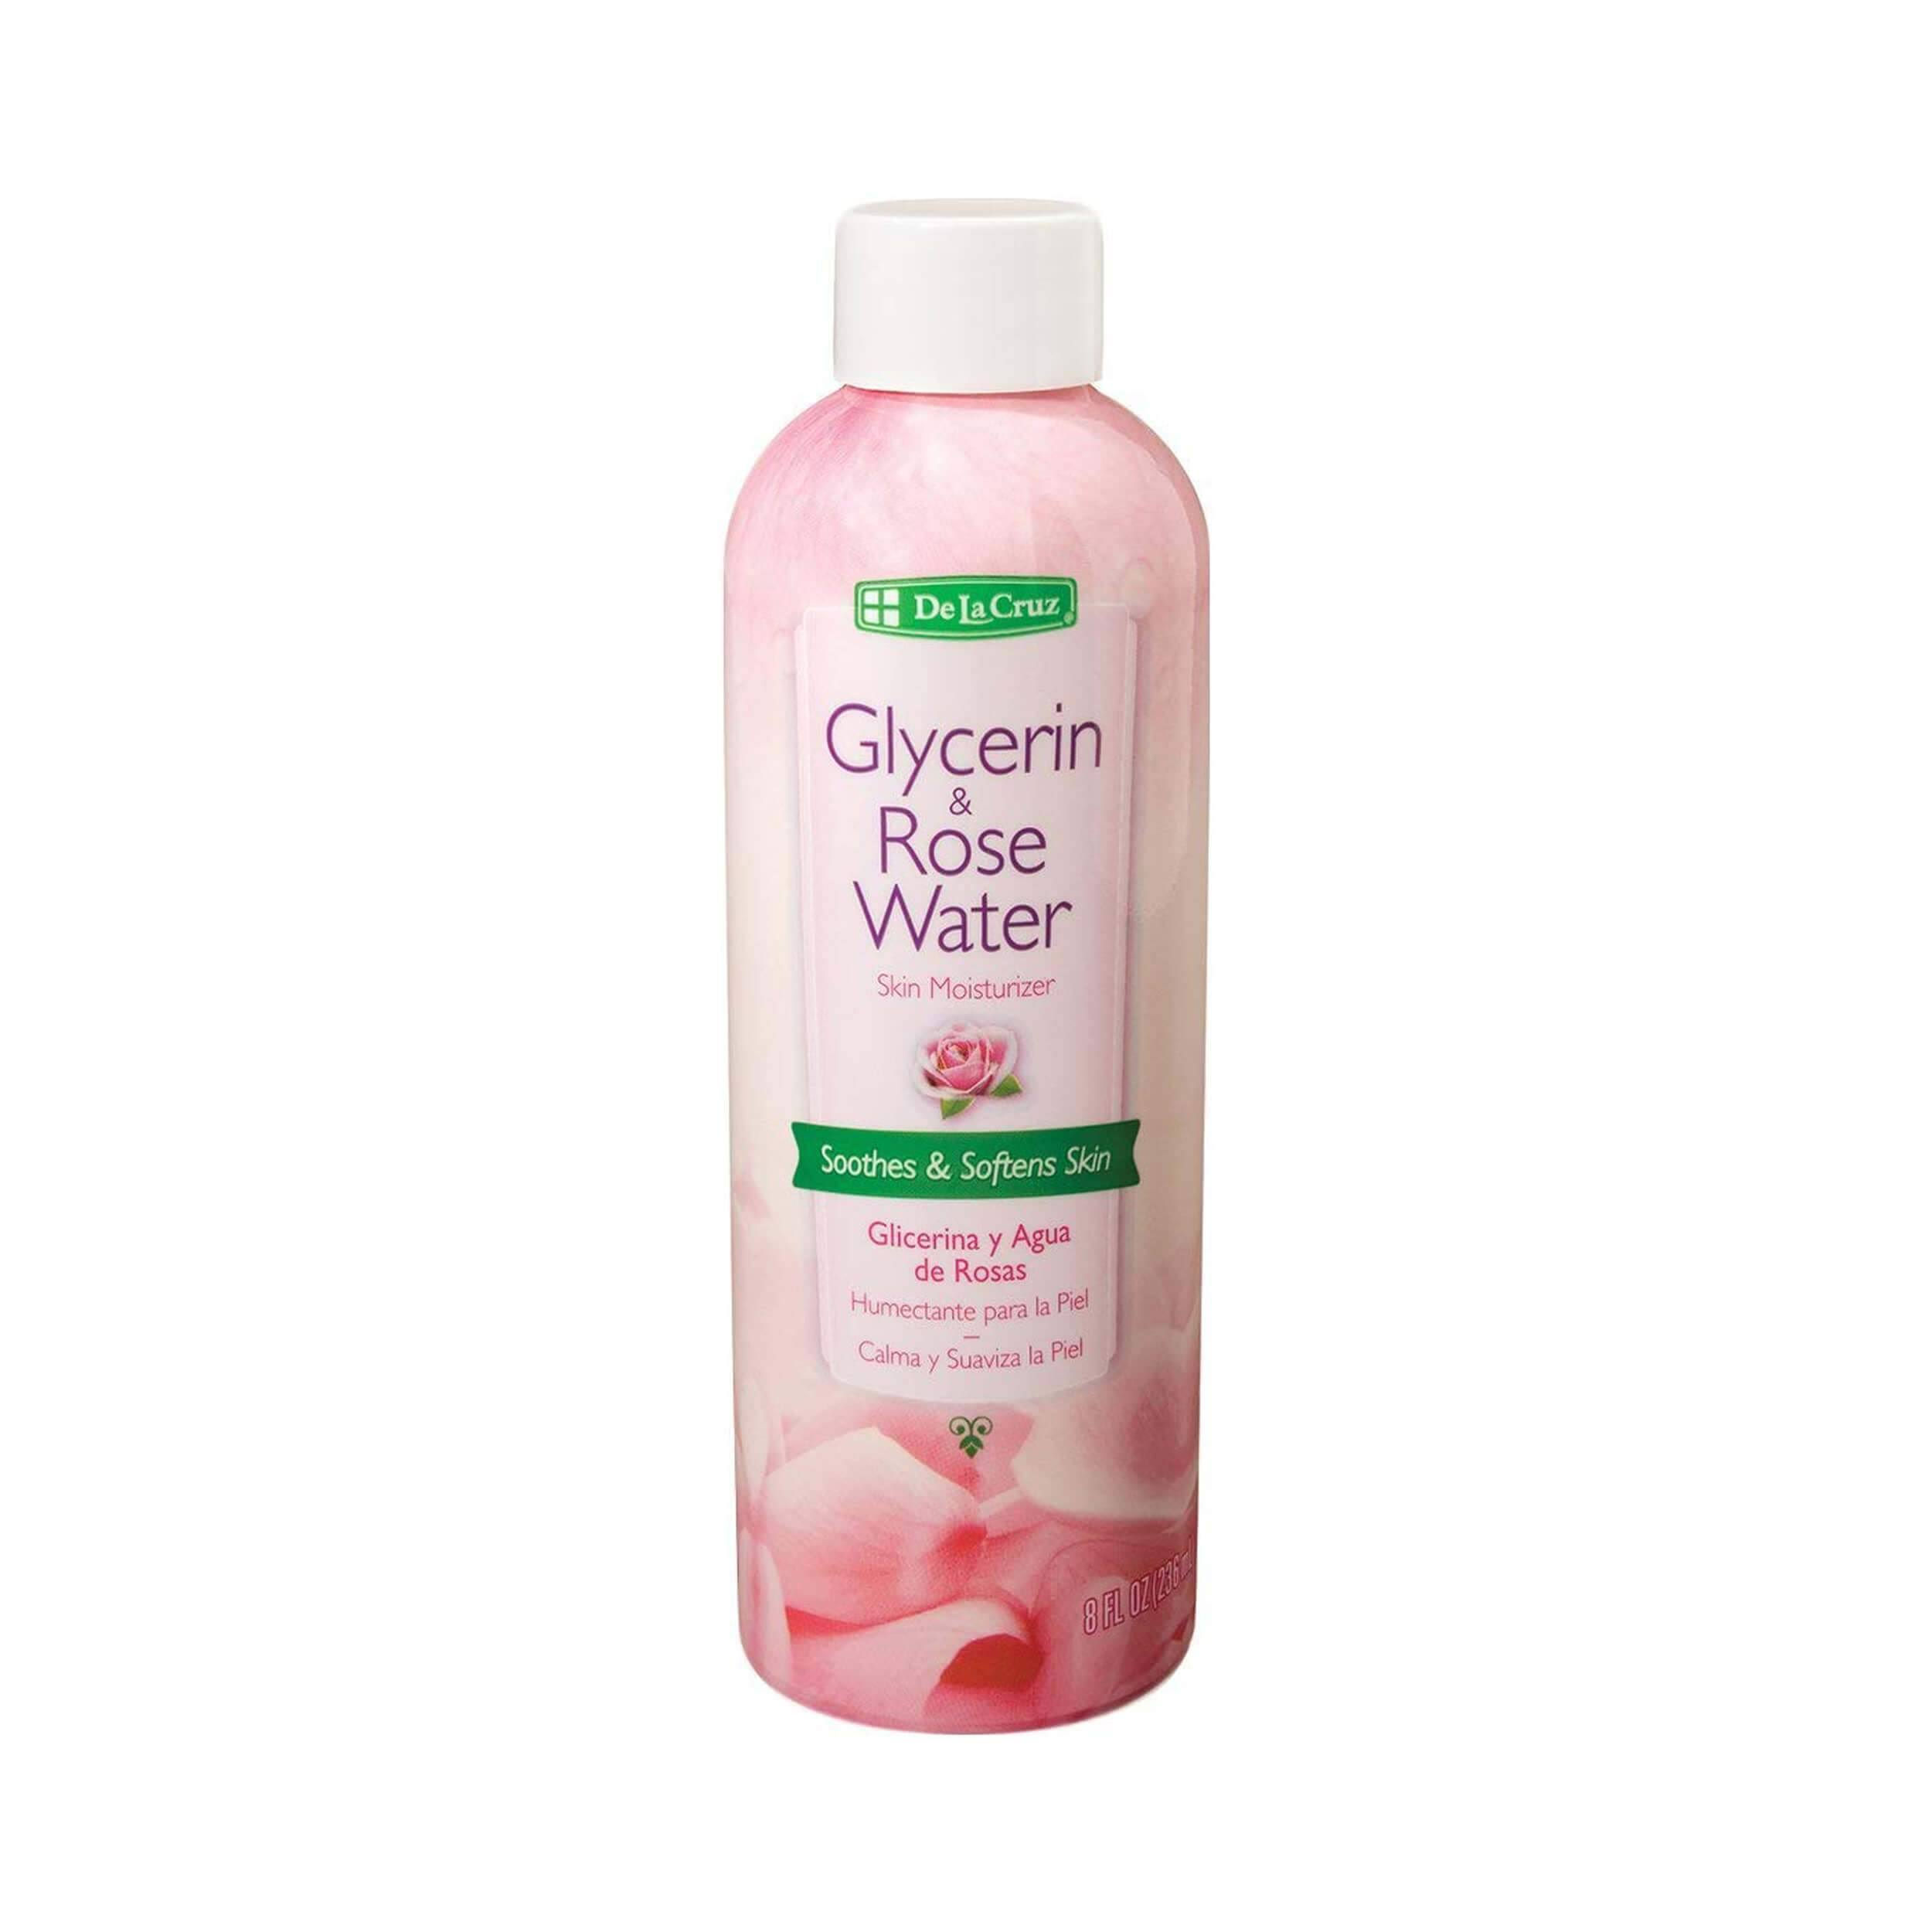 De La Cruz Glycerin Rose Water - 6pk, 8oz